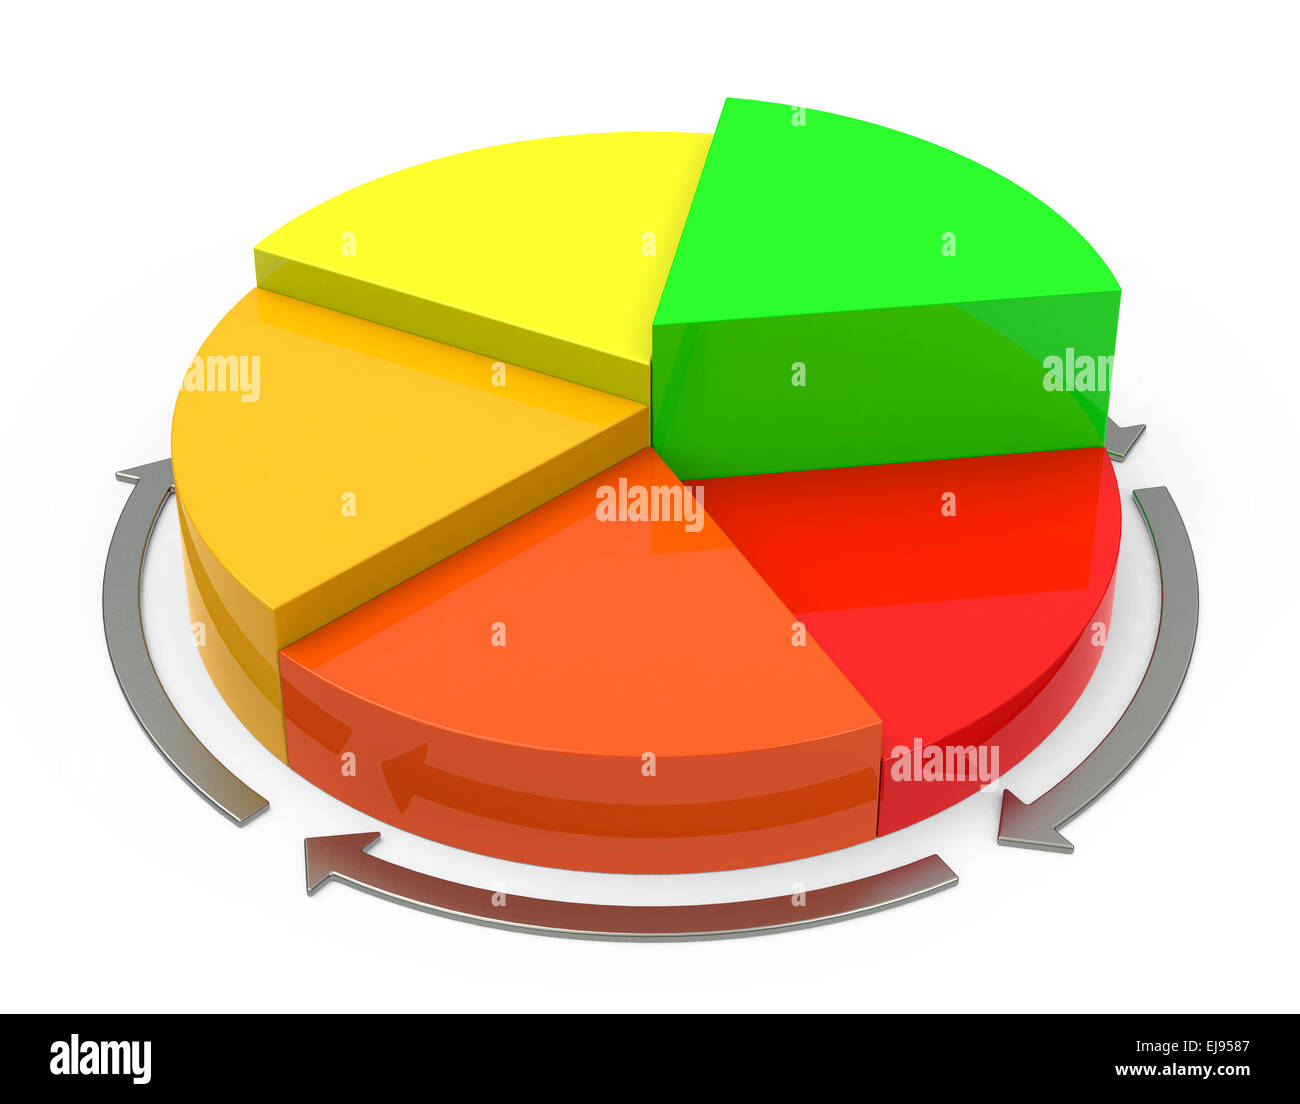 the statistic - Stock Image